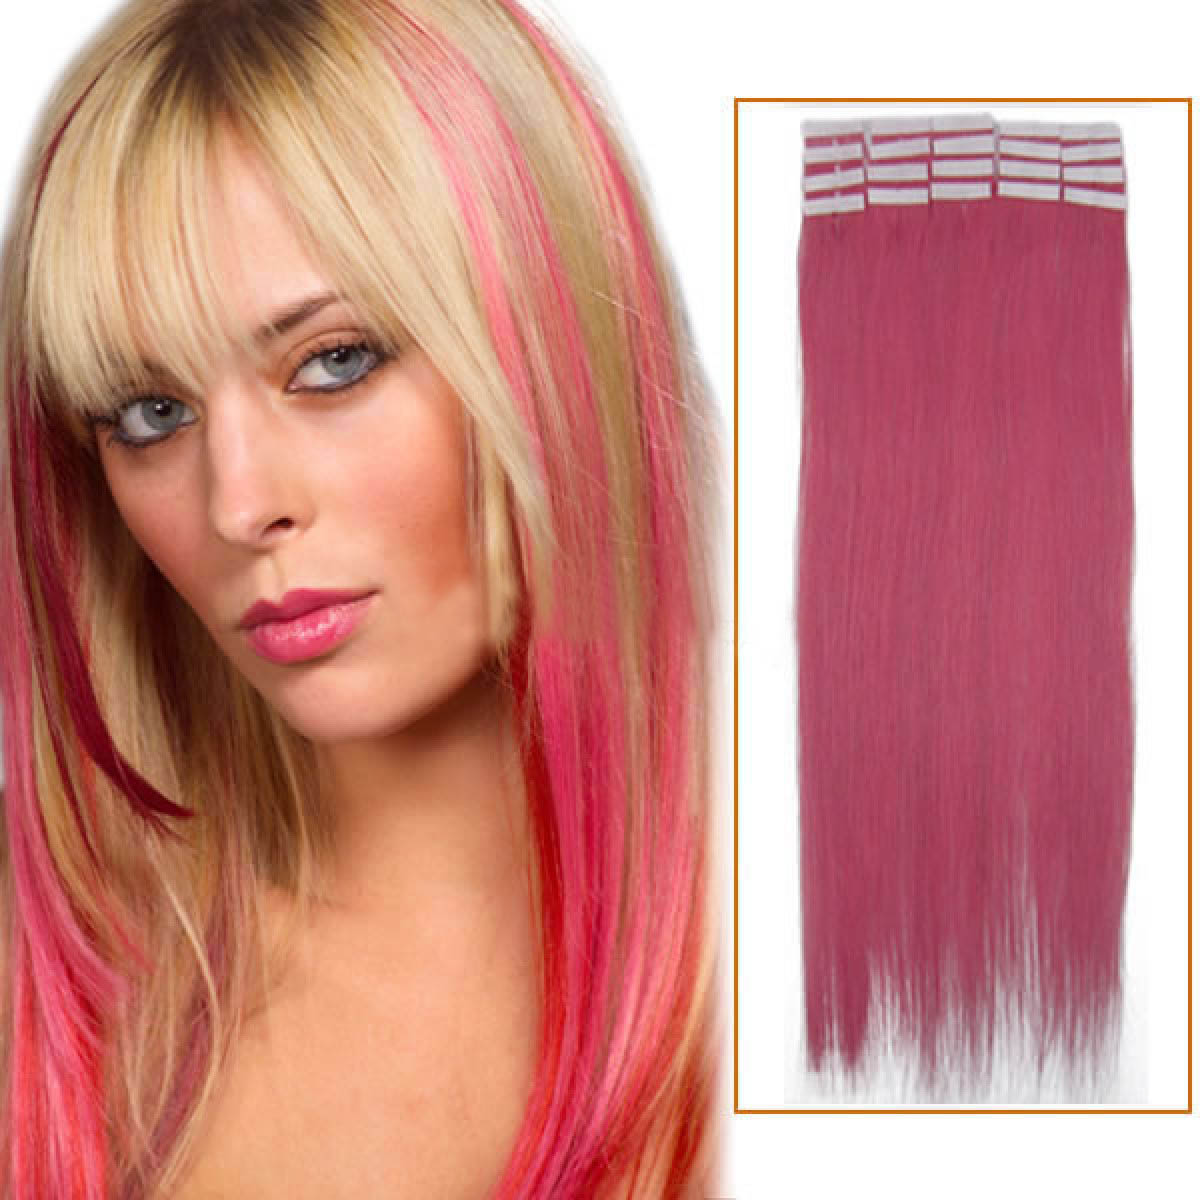 Inch pink tape in human hair extensions 20pcs 20 inch pink tape in human hair extensions 20pcs pmusecretfo Image collections